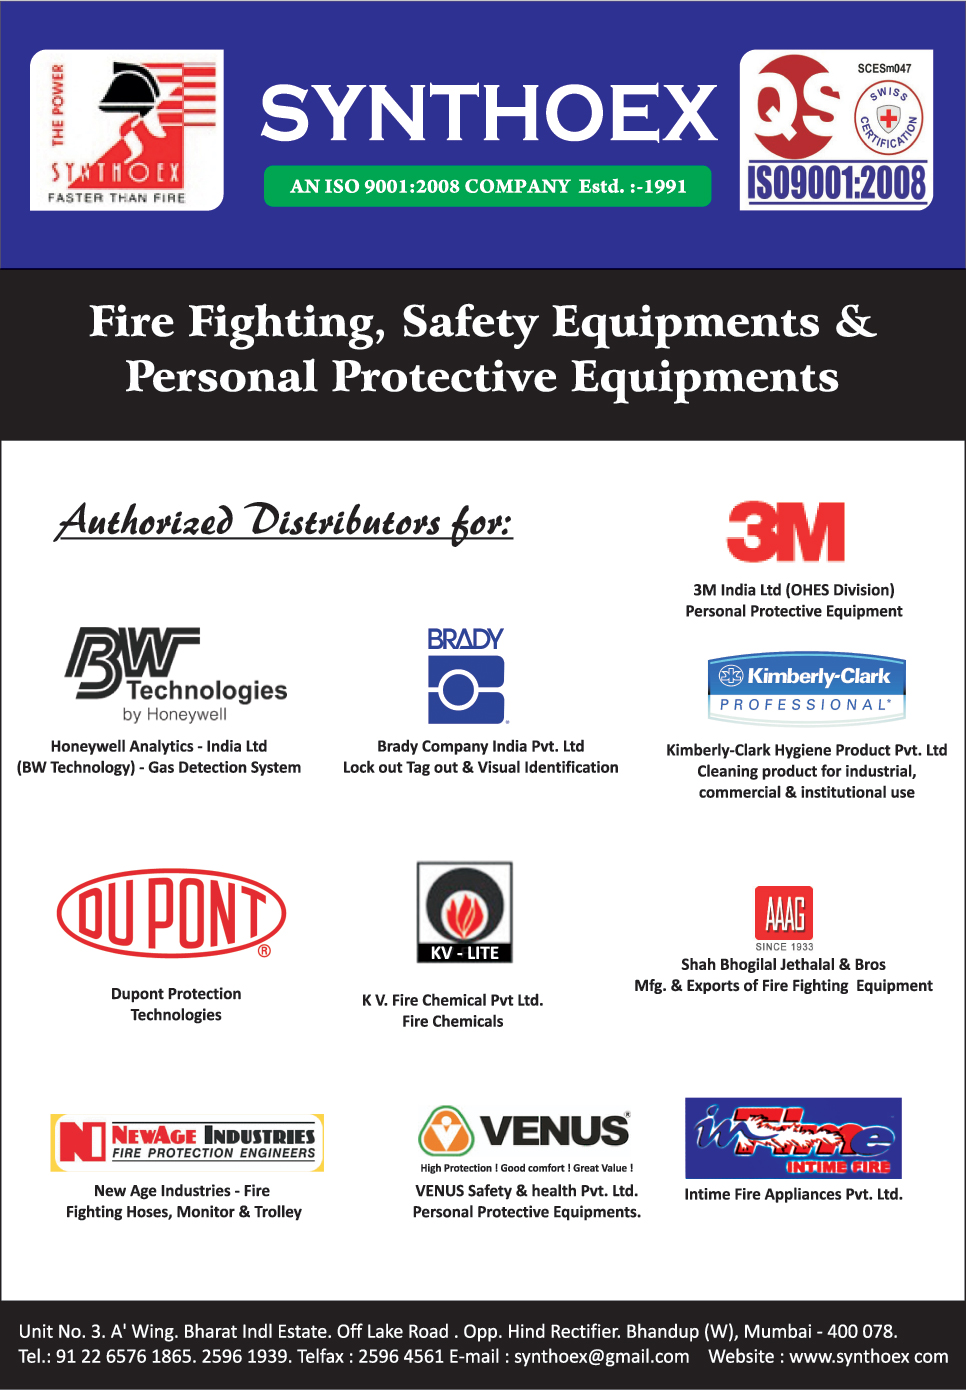 Fire Fighting Equipments, Safety Equipments, Personal Protective Equipments, Personal Safety Equipments, Gas Detection Systems, Lock Out Tags, Visual Identifications, Industrial Cleaning Products, Commercial Cleaning Products, Institutional Cleaning Products, Fire Chemicals, Fire Fighting Hoses, Fire Fighting Monitors, Fire Fighting Trolleys, Fire Appliances